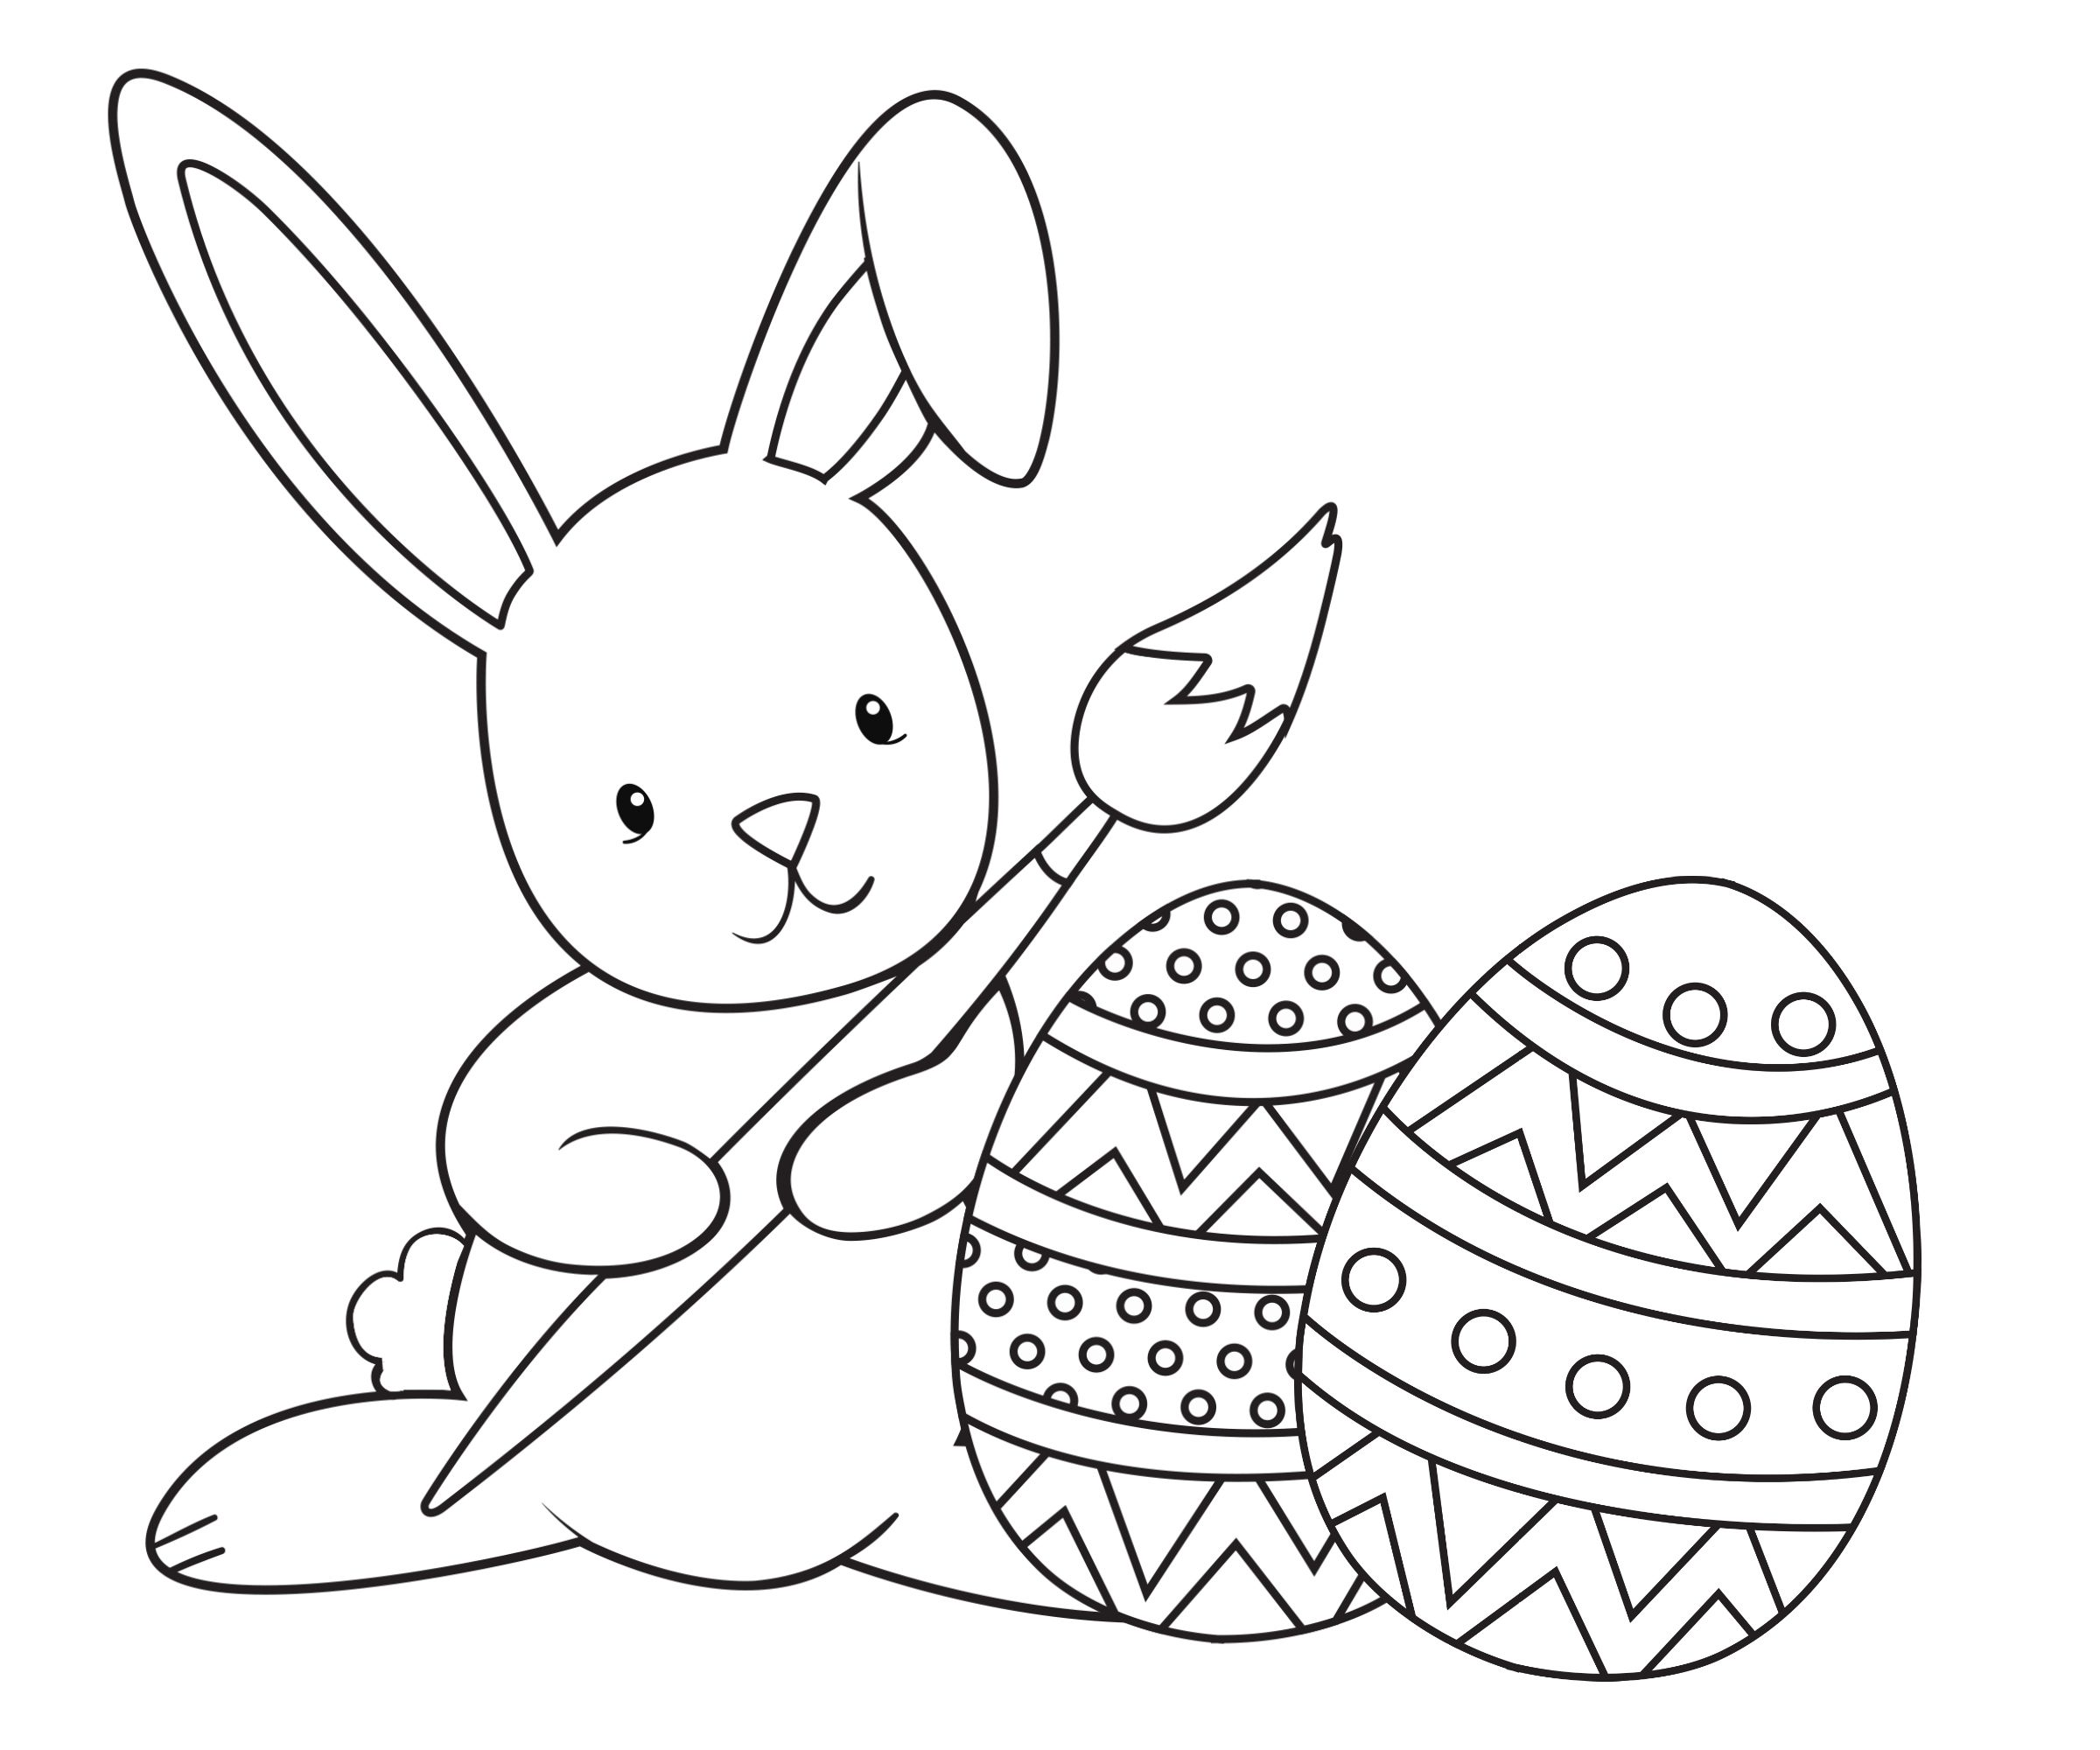 Easter Coloring Pages For Kids Bunny Coloring Pages Free Easter